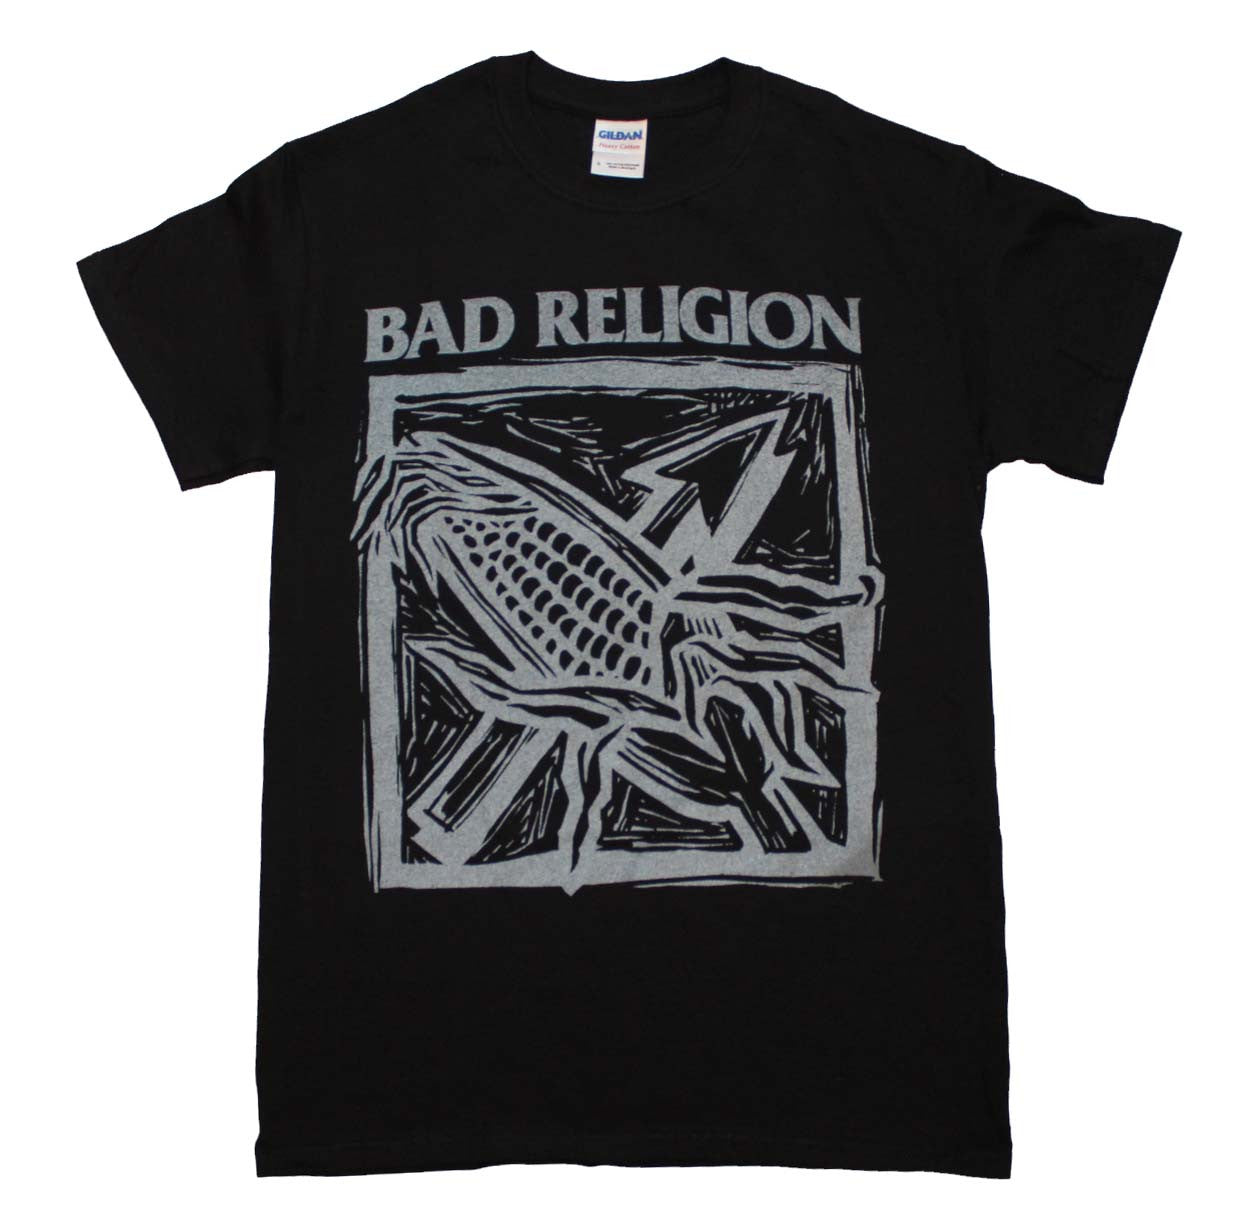 Bad Religion Against the Grain Black T-Shirt Small - X Large